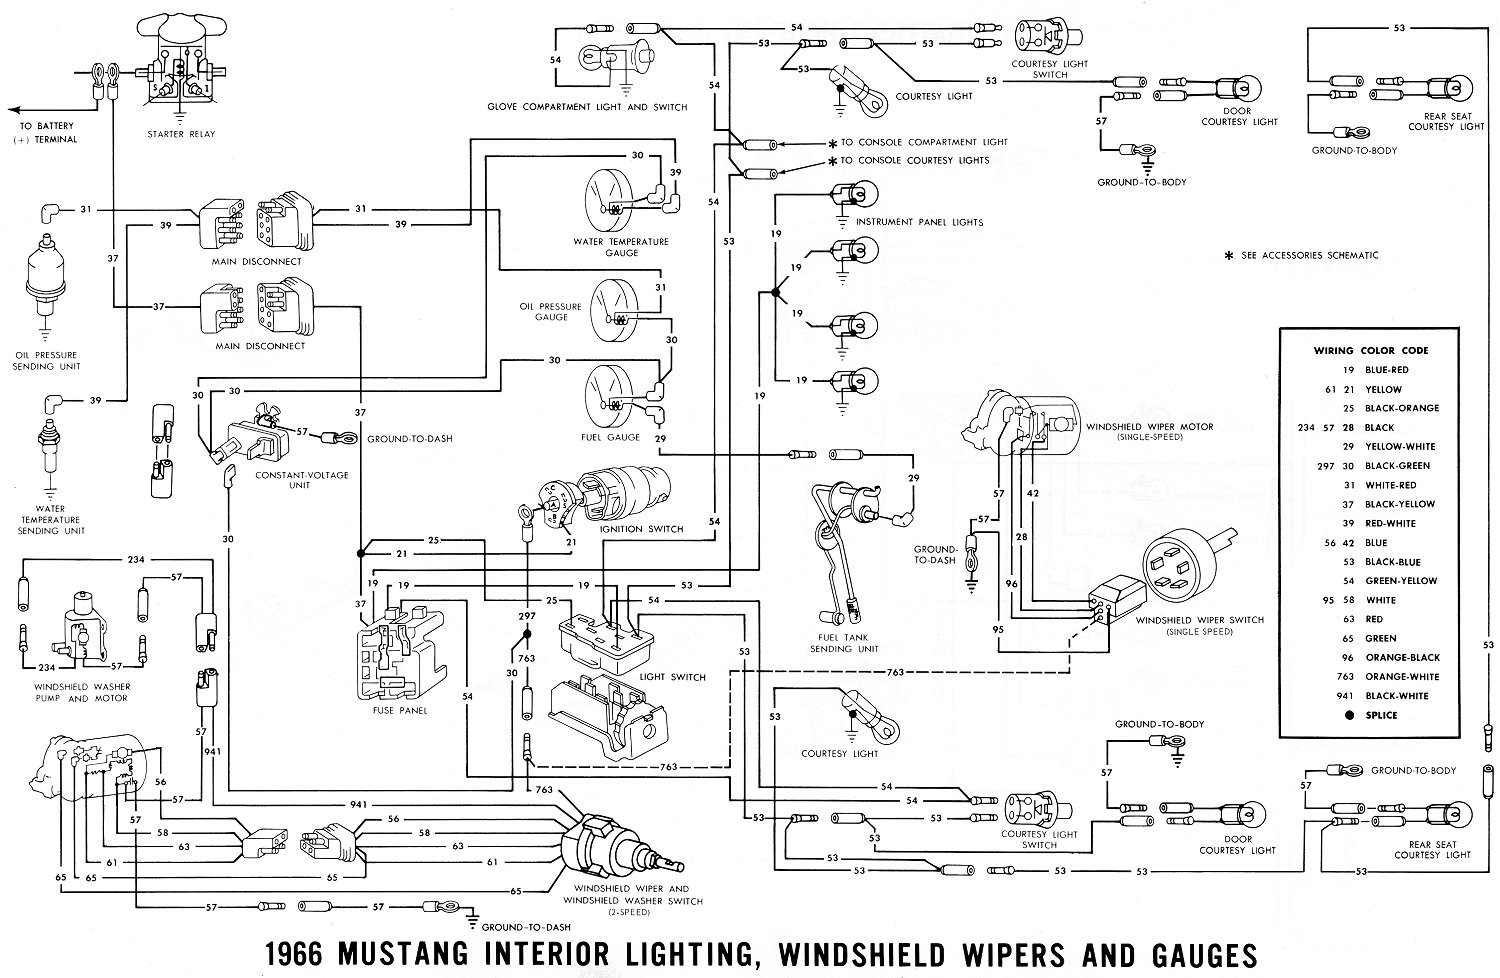 1966 Mustang Wiring Diagrams Average Joe Restoration 4 Wire Connector Diagram Schematic